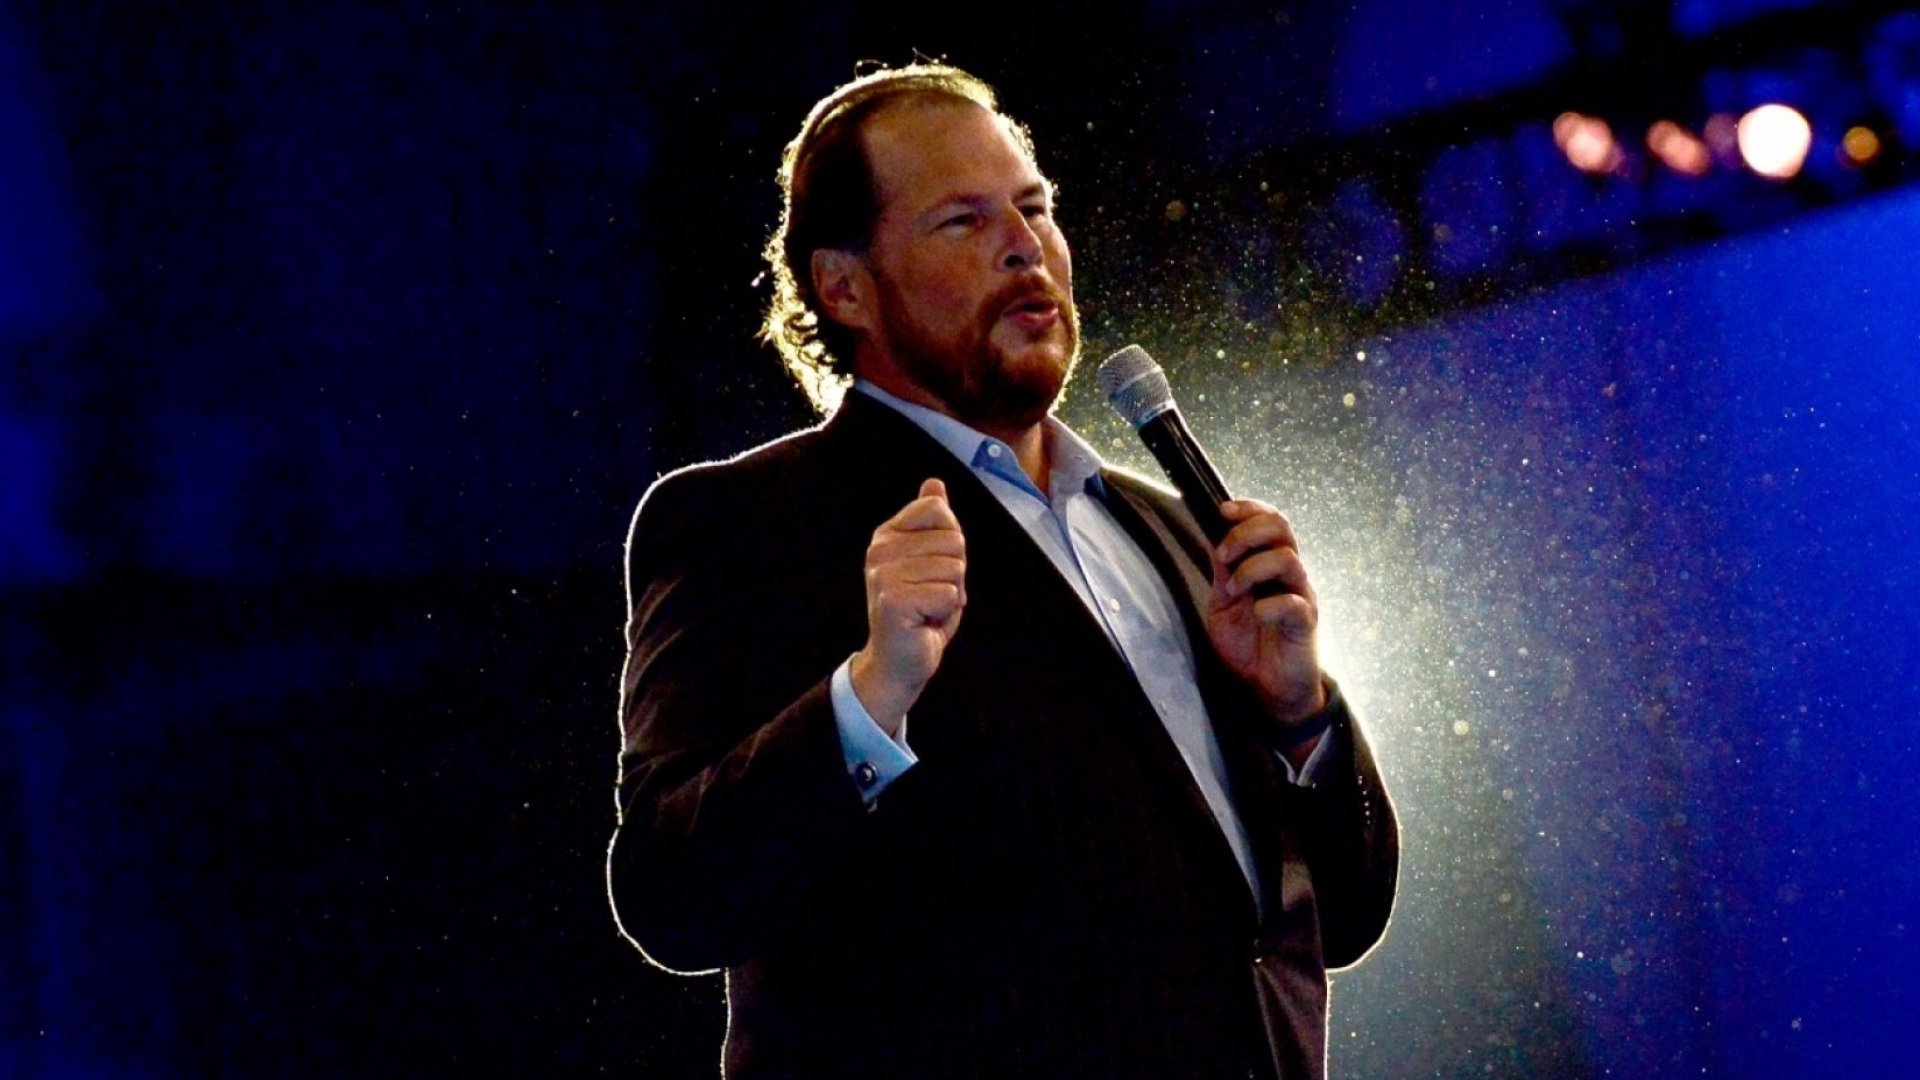 Salesforce Invests $3 Million to Close Gender Pay Gap